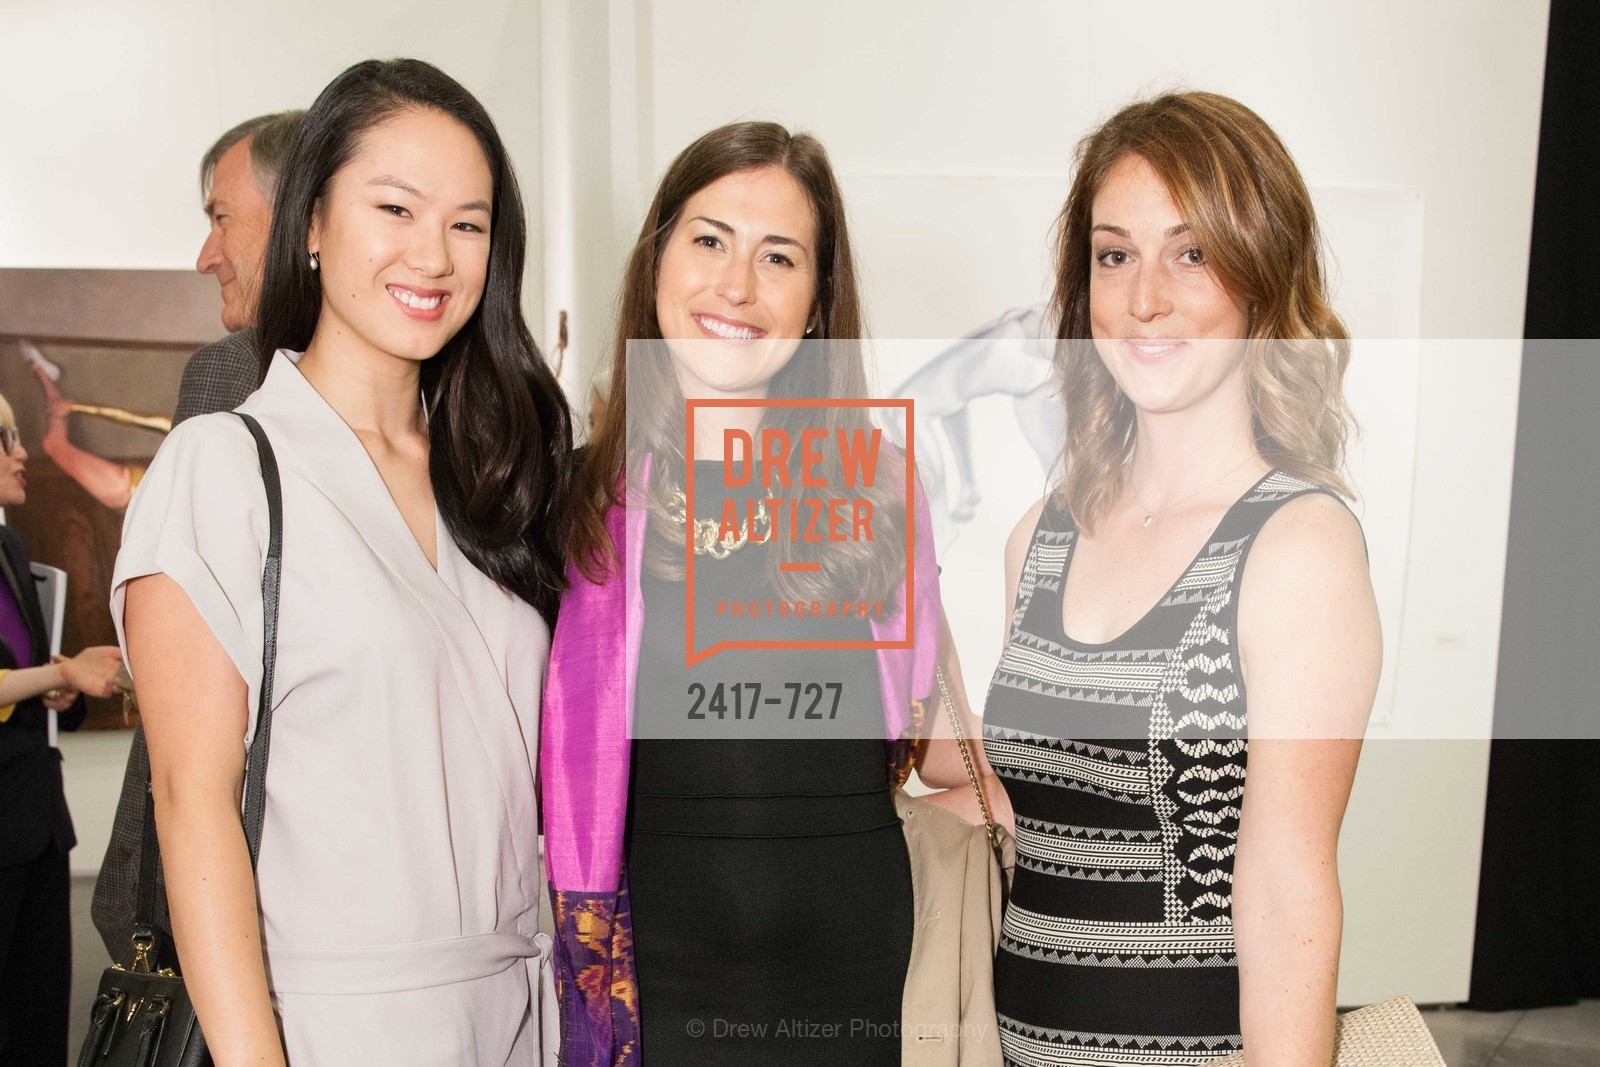 Tali Jang, Katy Dickensheets, Claire Herr, SAN FRANCISCO ART INSTITUTE Gala Honoring Art Visionary and Advocate ROSELYNE CHROMAN SWIG, US, May 13th, 2015,Drew Altizer, Drew Altizer Photography, full-service agency, private events, San Francisco photographer, photographer california